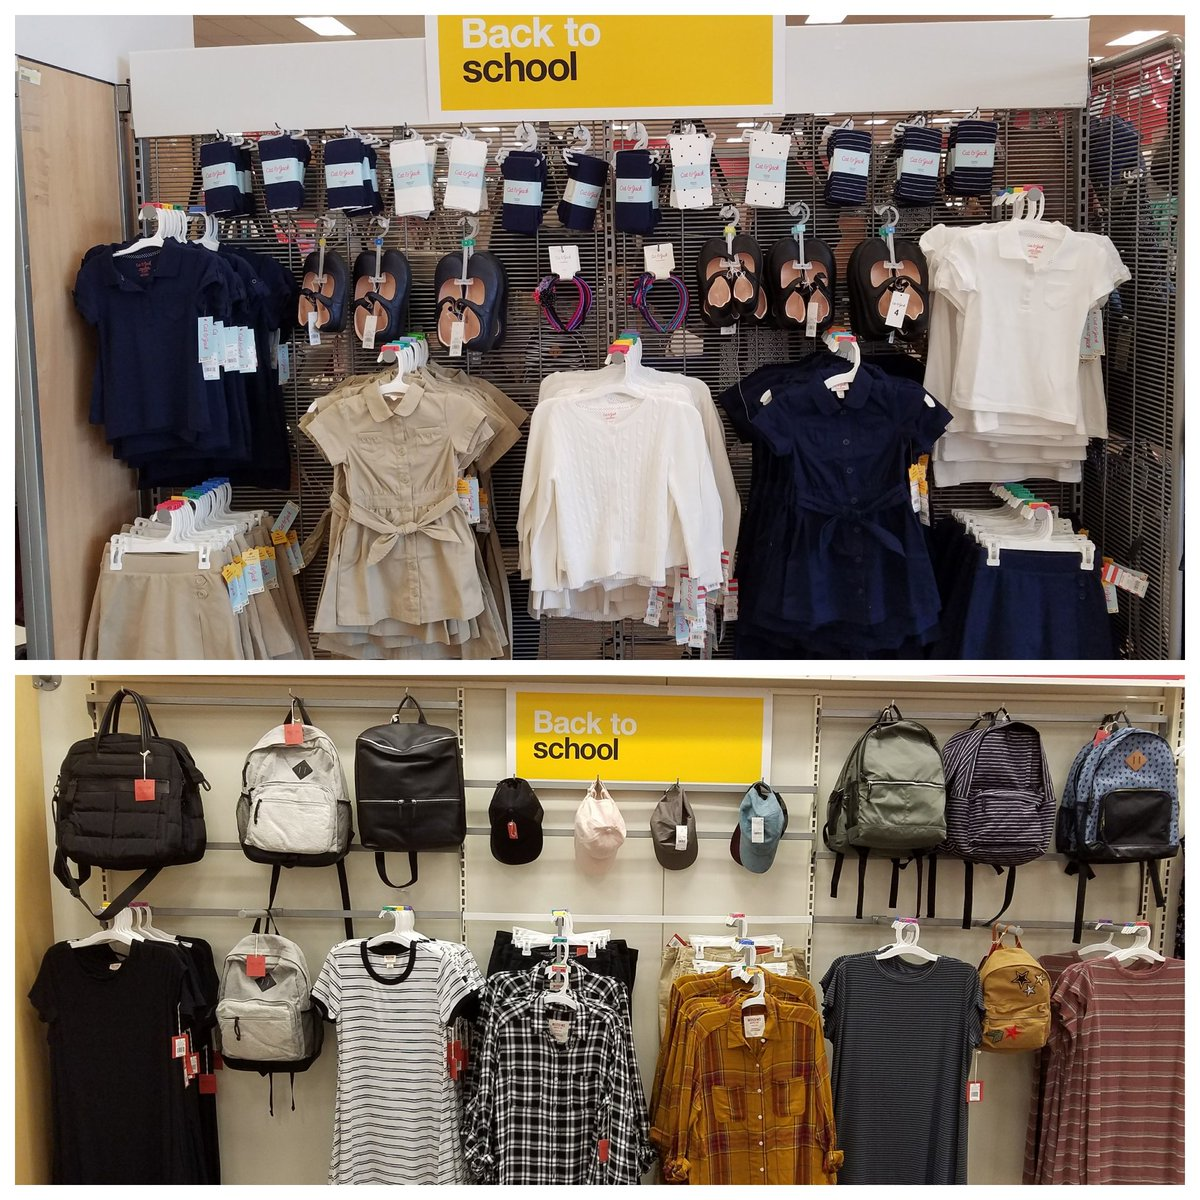 Driving those BTS sales here at T2320! #T2320ModelStore #impact #shoppability #standards #KnowYourBusiness<br>http://pic.twitter.com/9Bp0ycfPoF